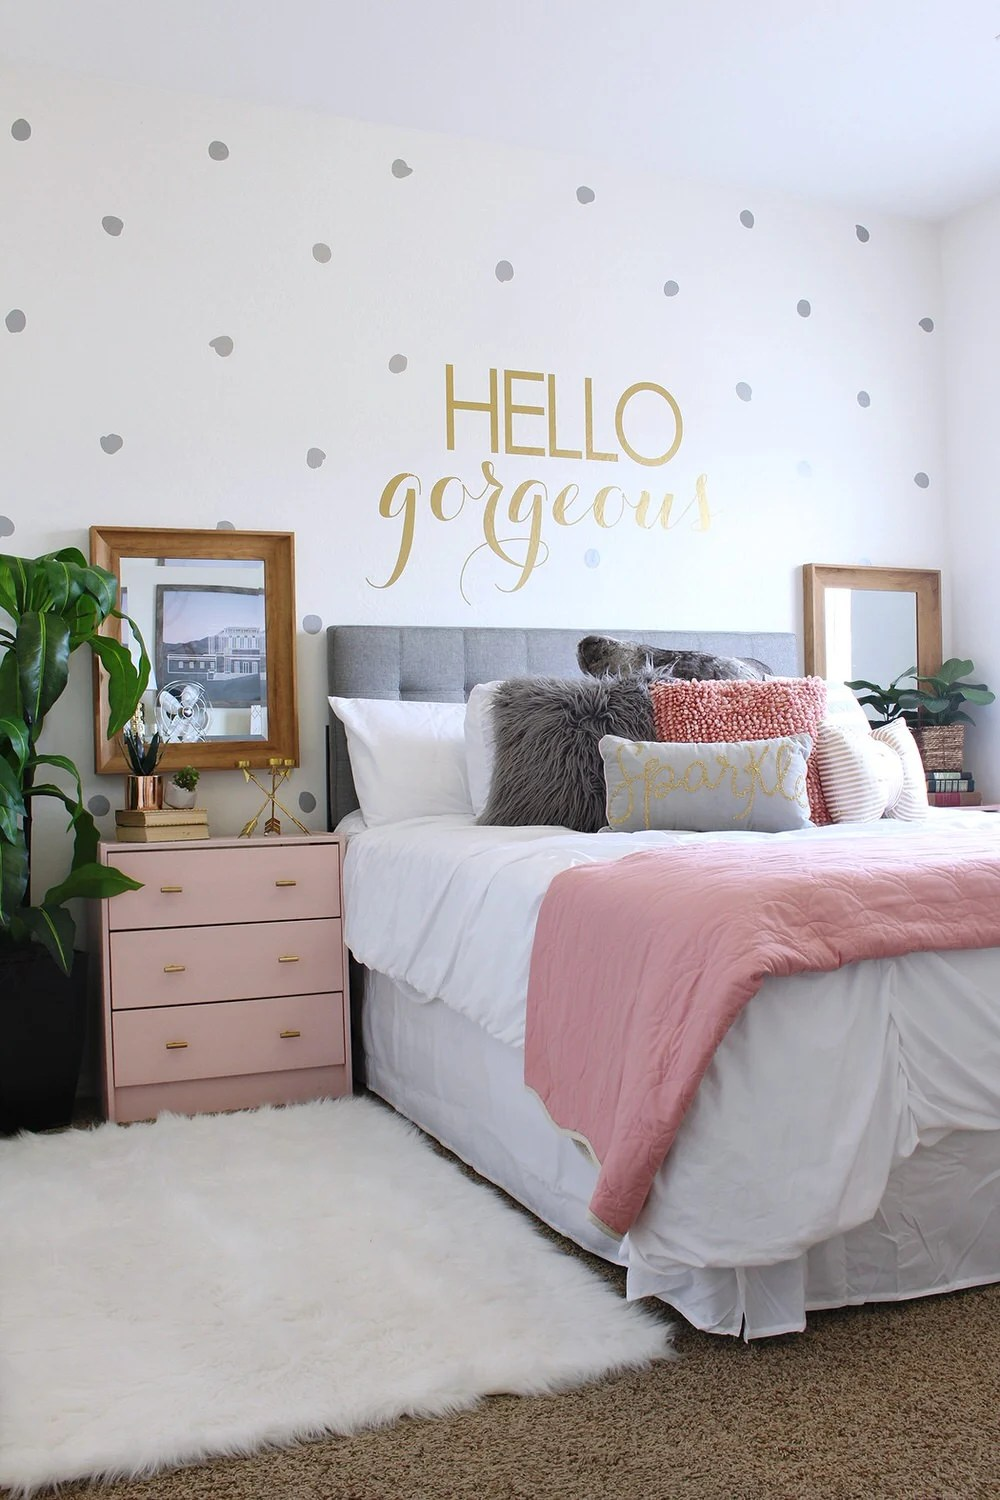 Teen Bedroom Decorating Tips, Tricks & Projects • The ...